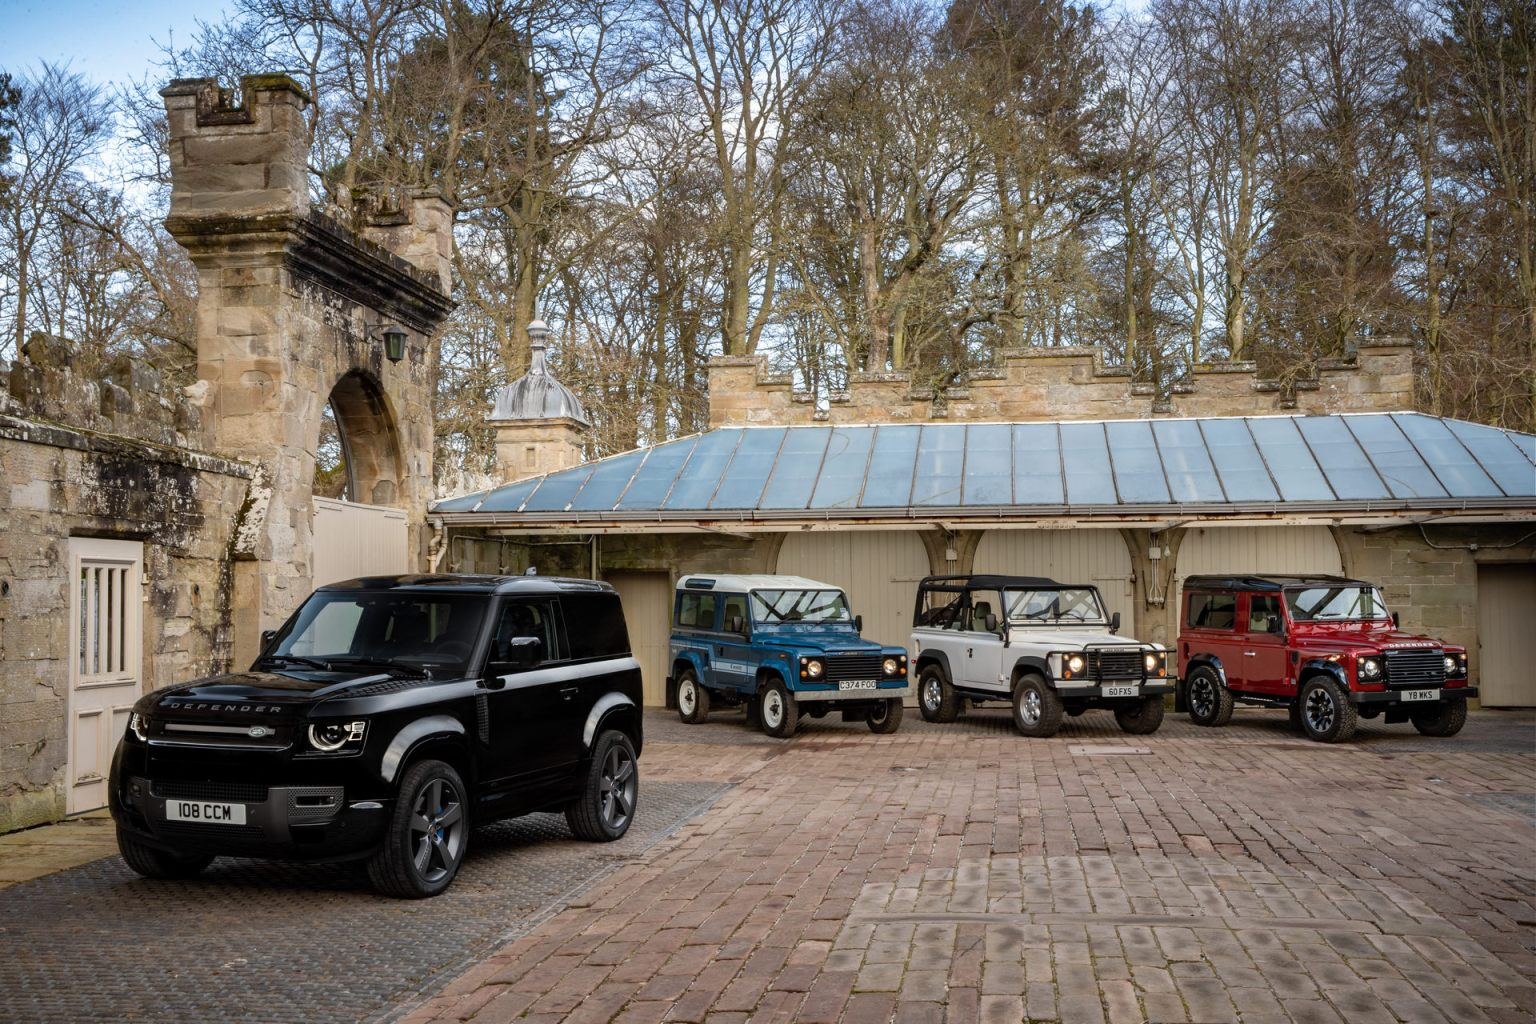 2022 Land Rover Defender Adds 518Hp V8 To Its powertrain ...